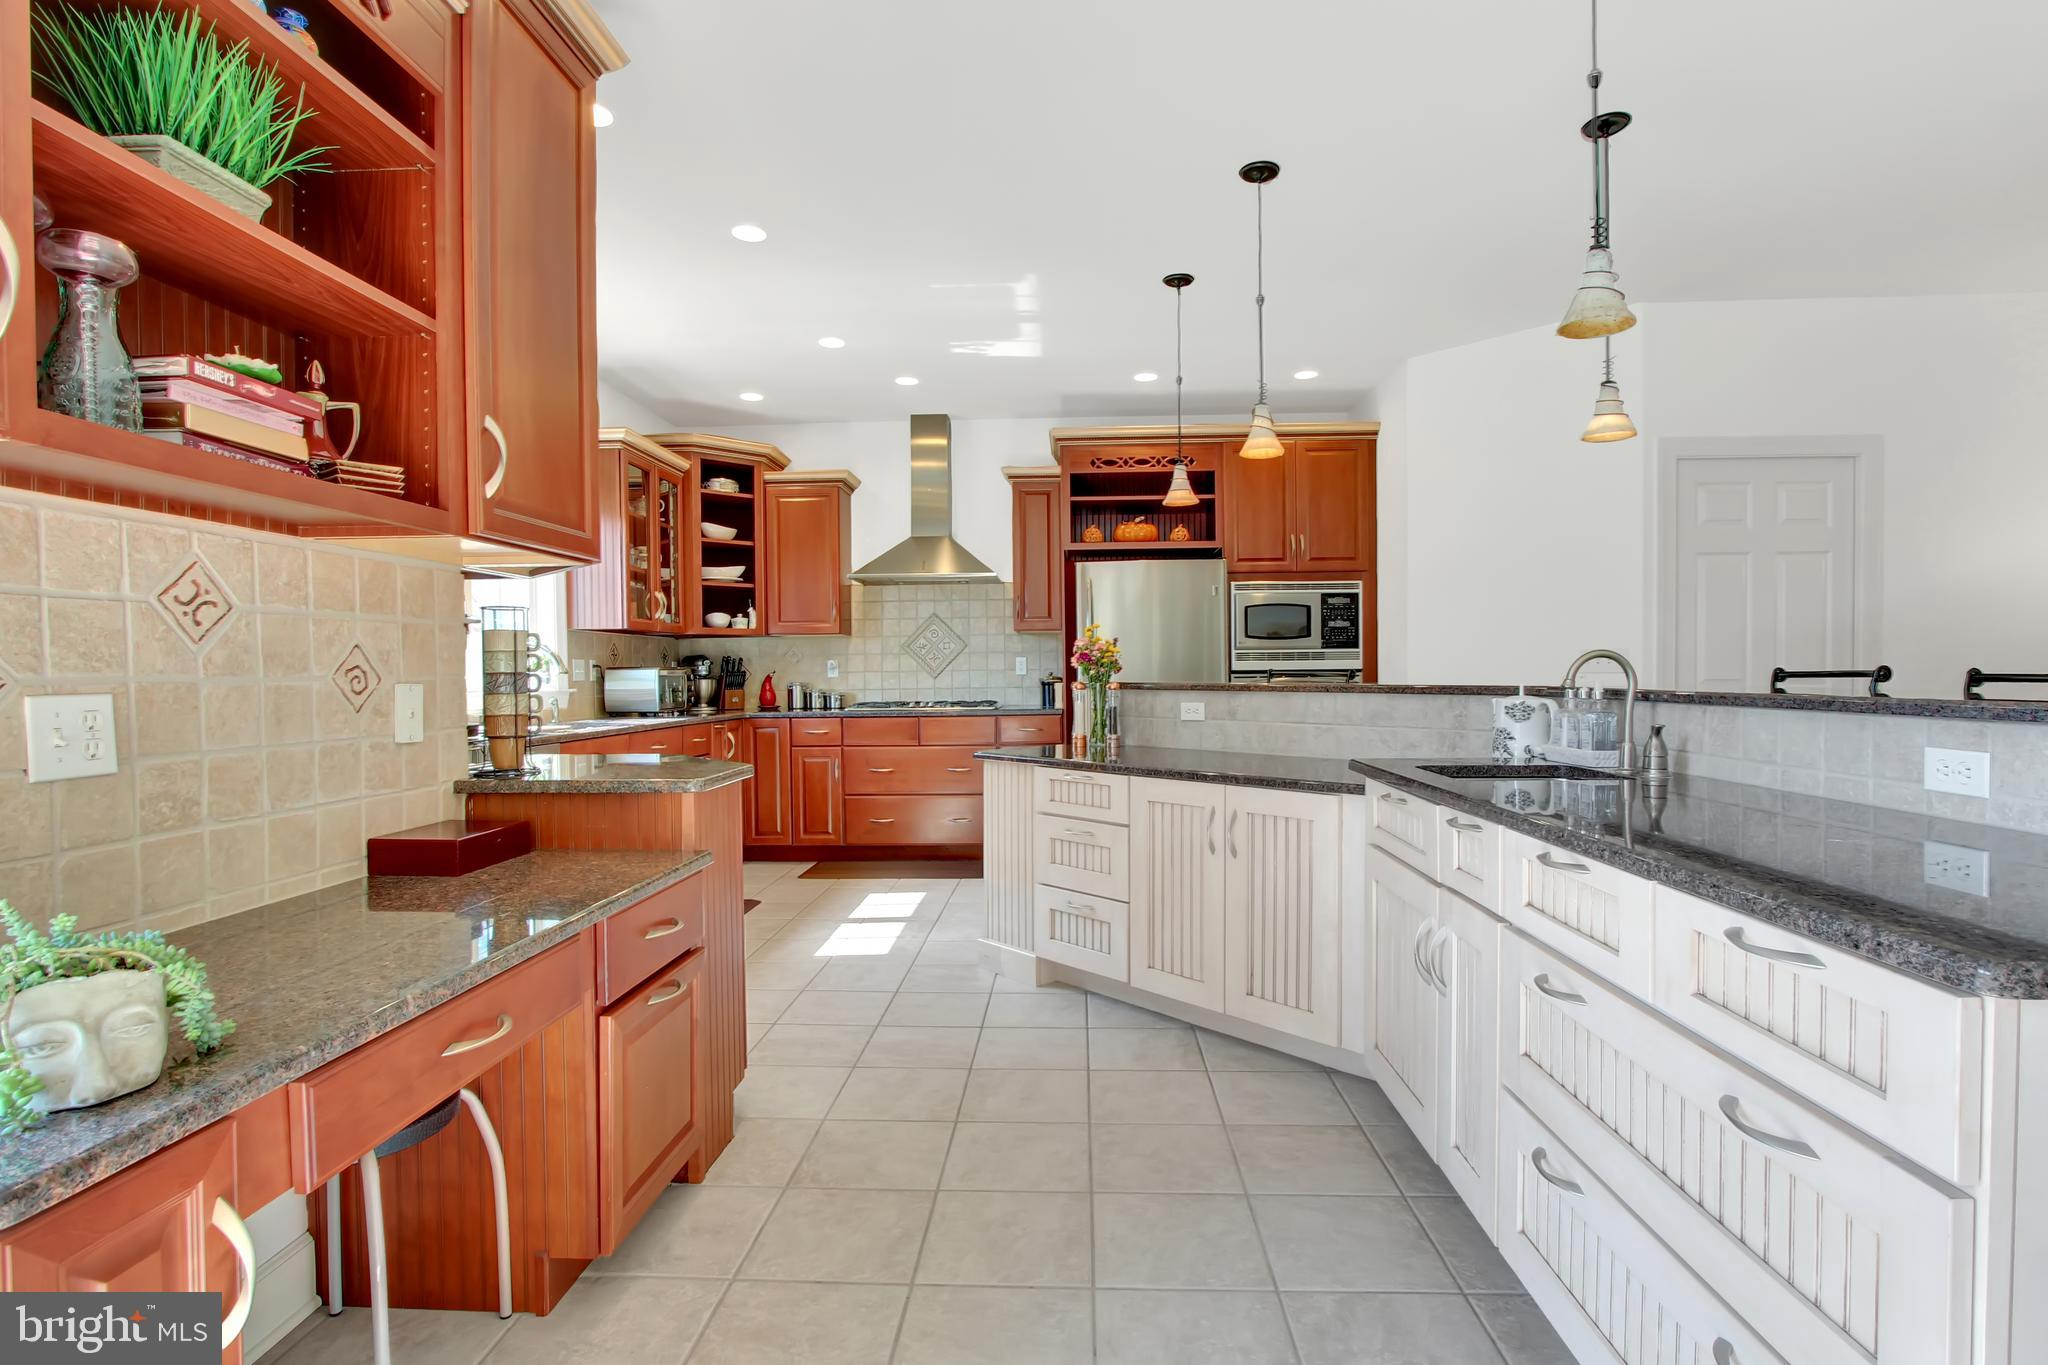 Curved lines, plenty of counter and shelf space